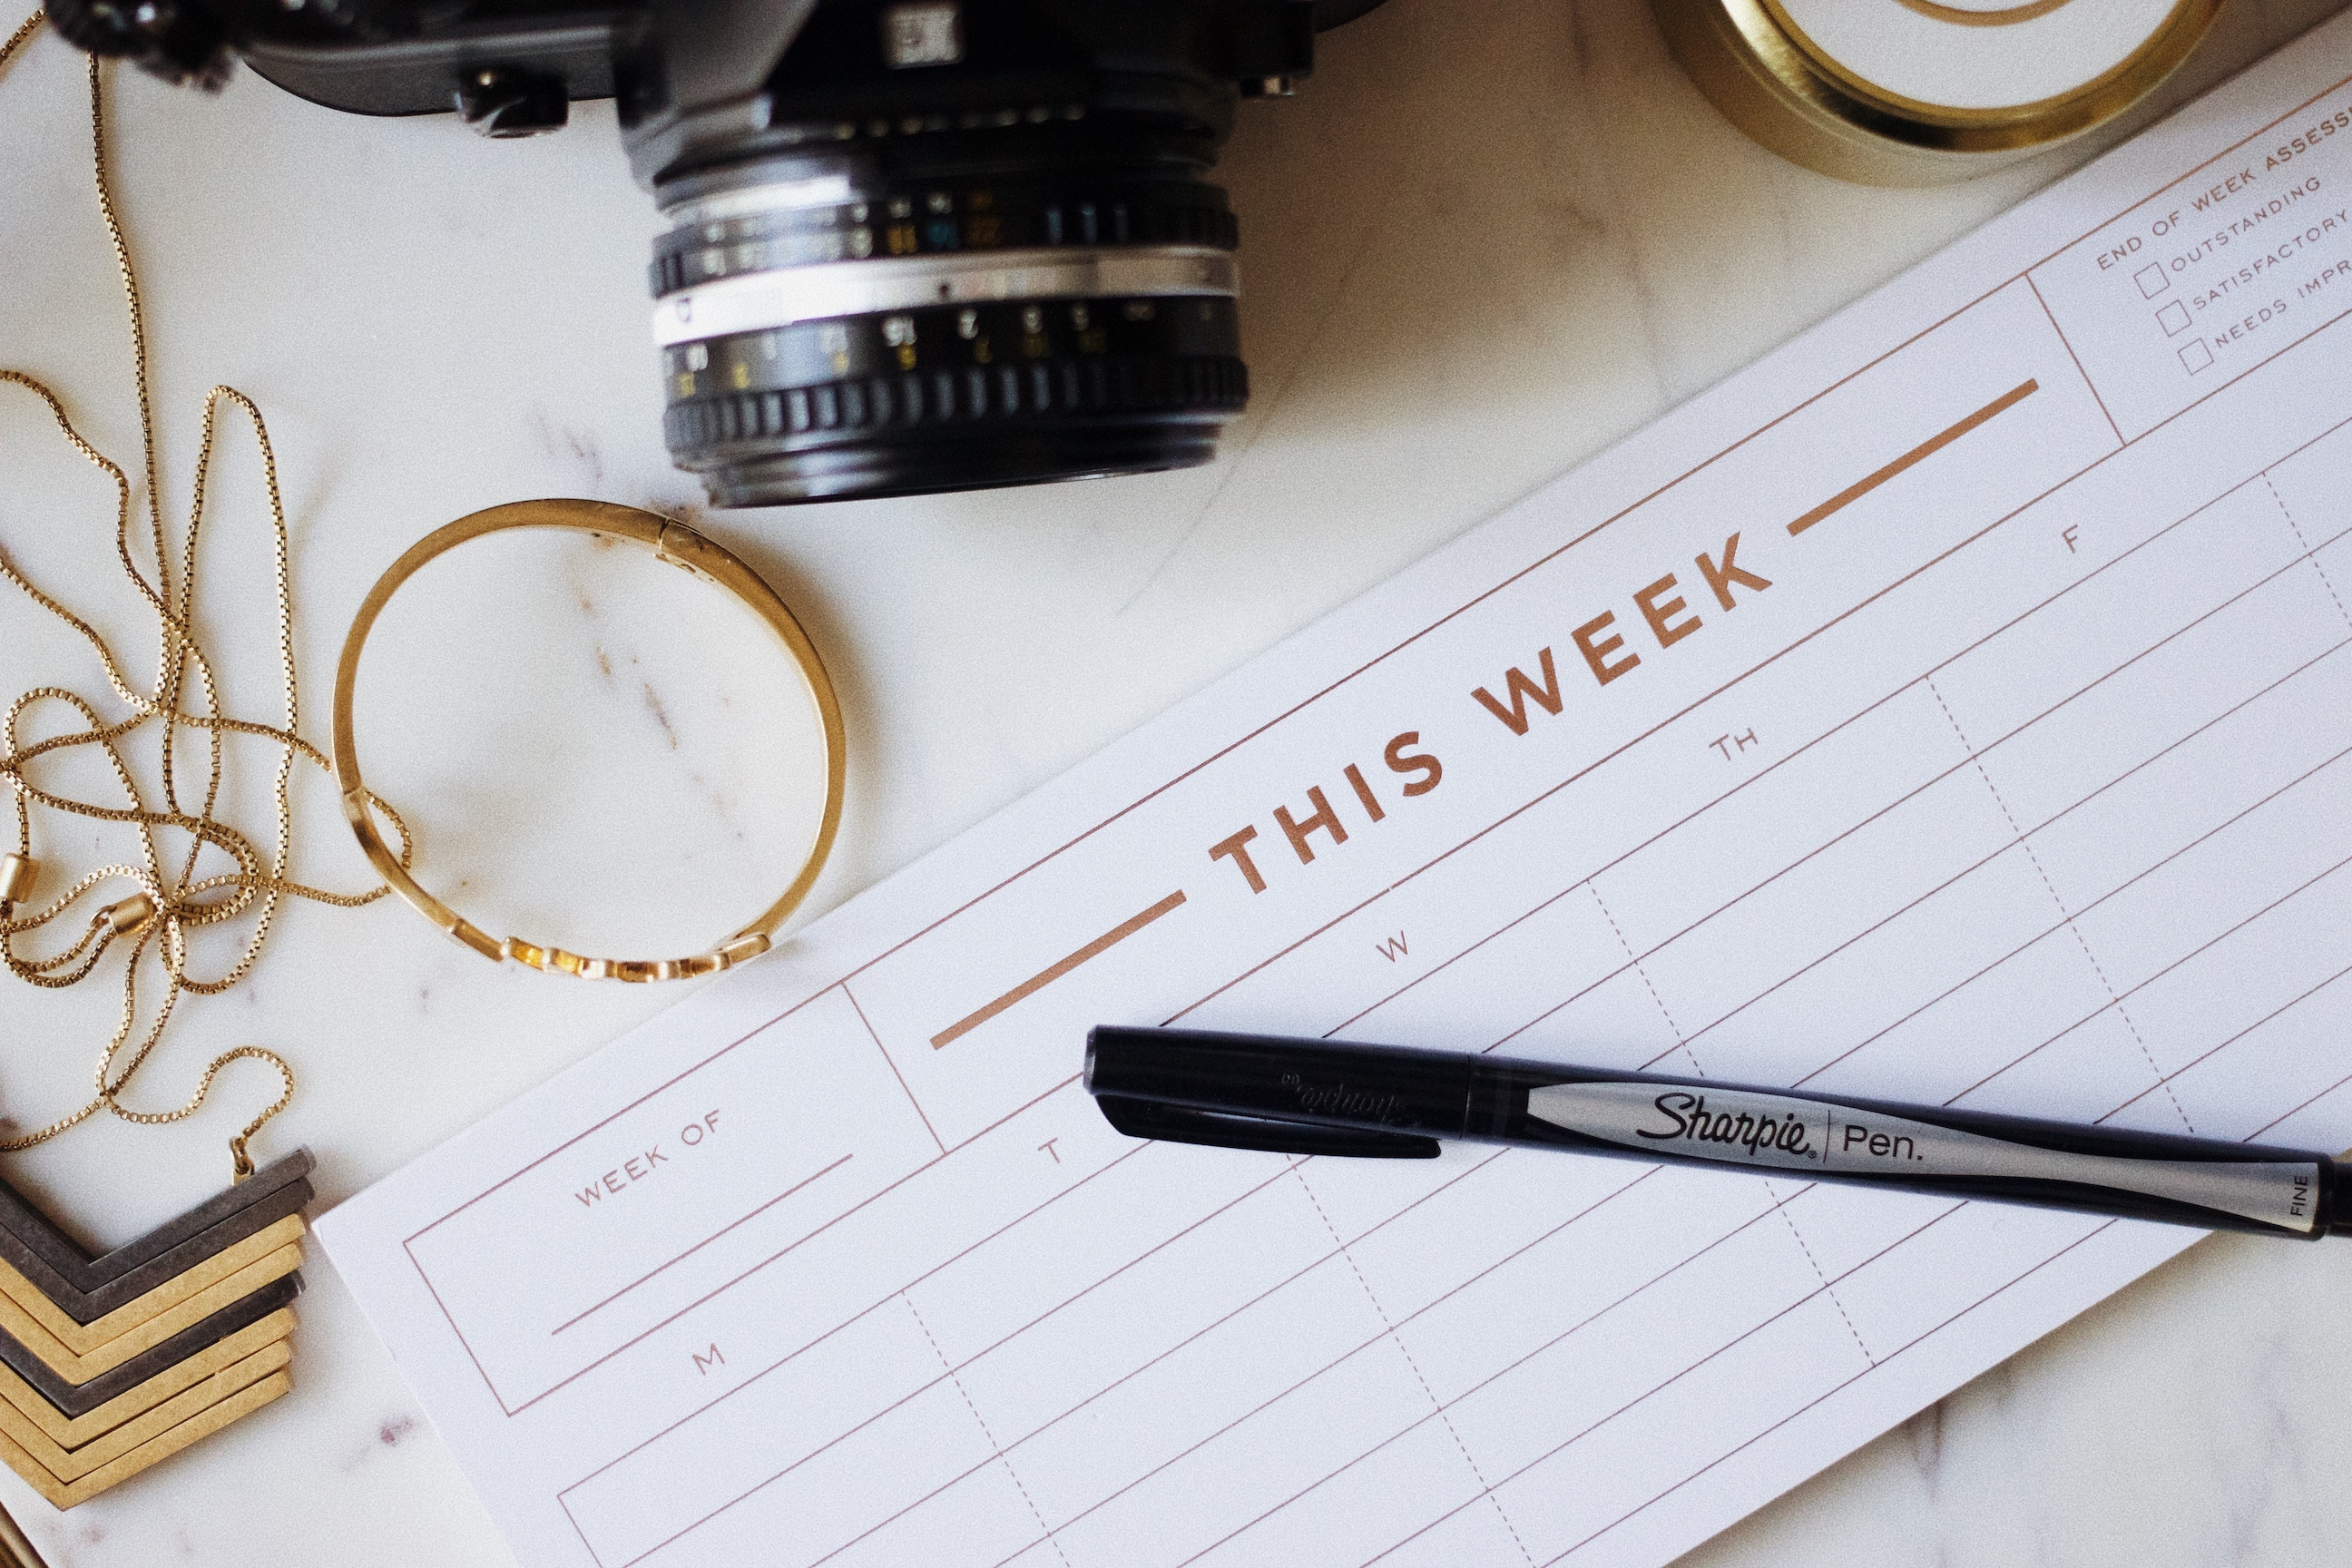 What I Learned from Tracking My Time for a Whole Week